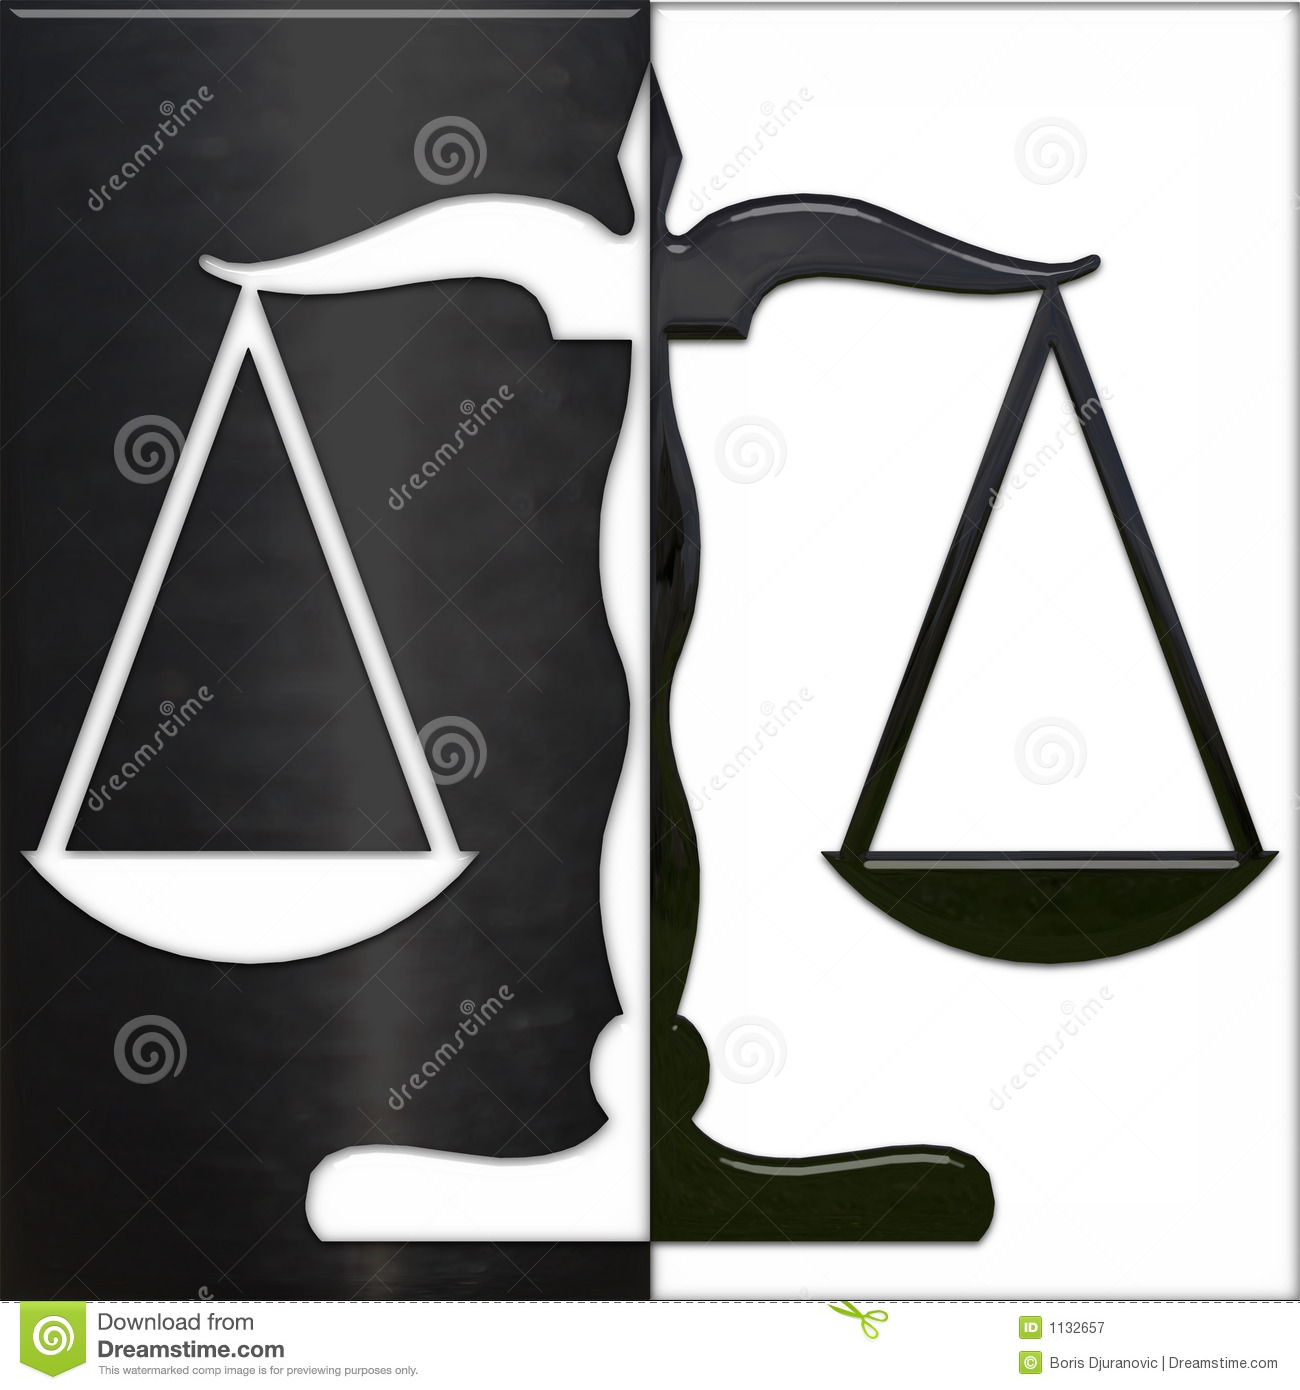 Scale of Justice black and white